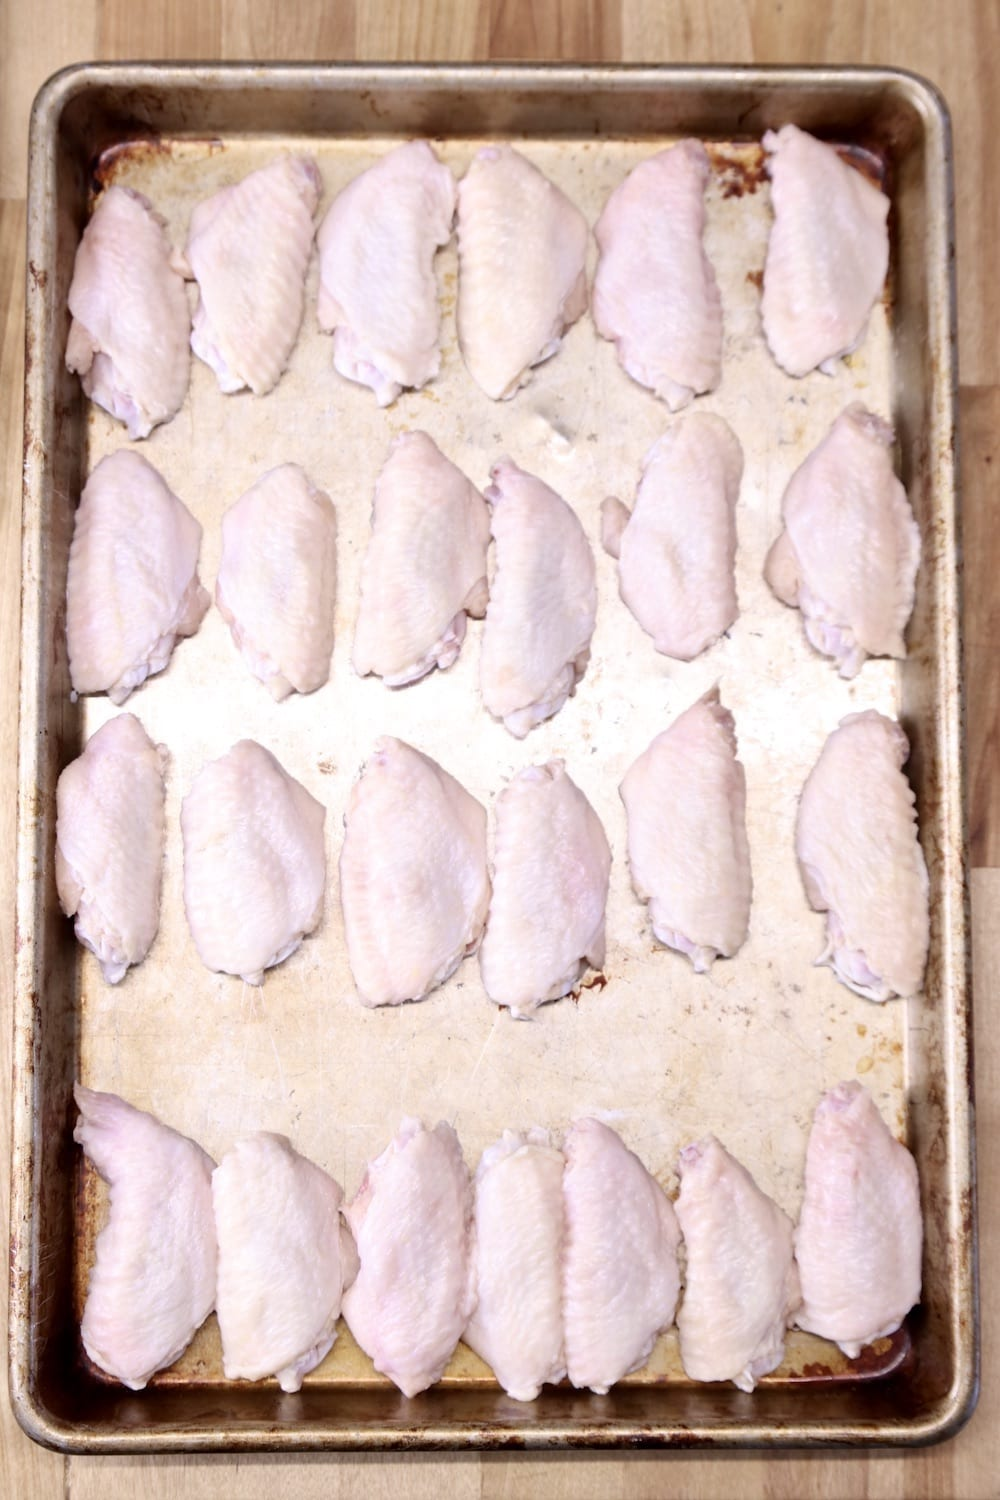 chicken wings on a baking sheet - uncooked